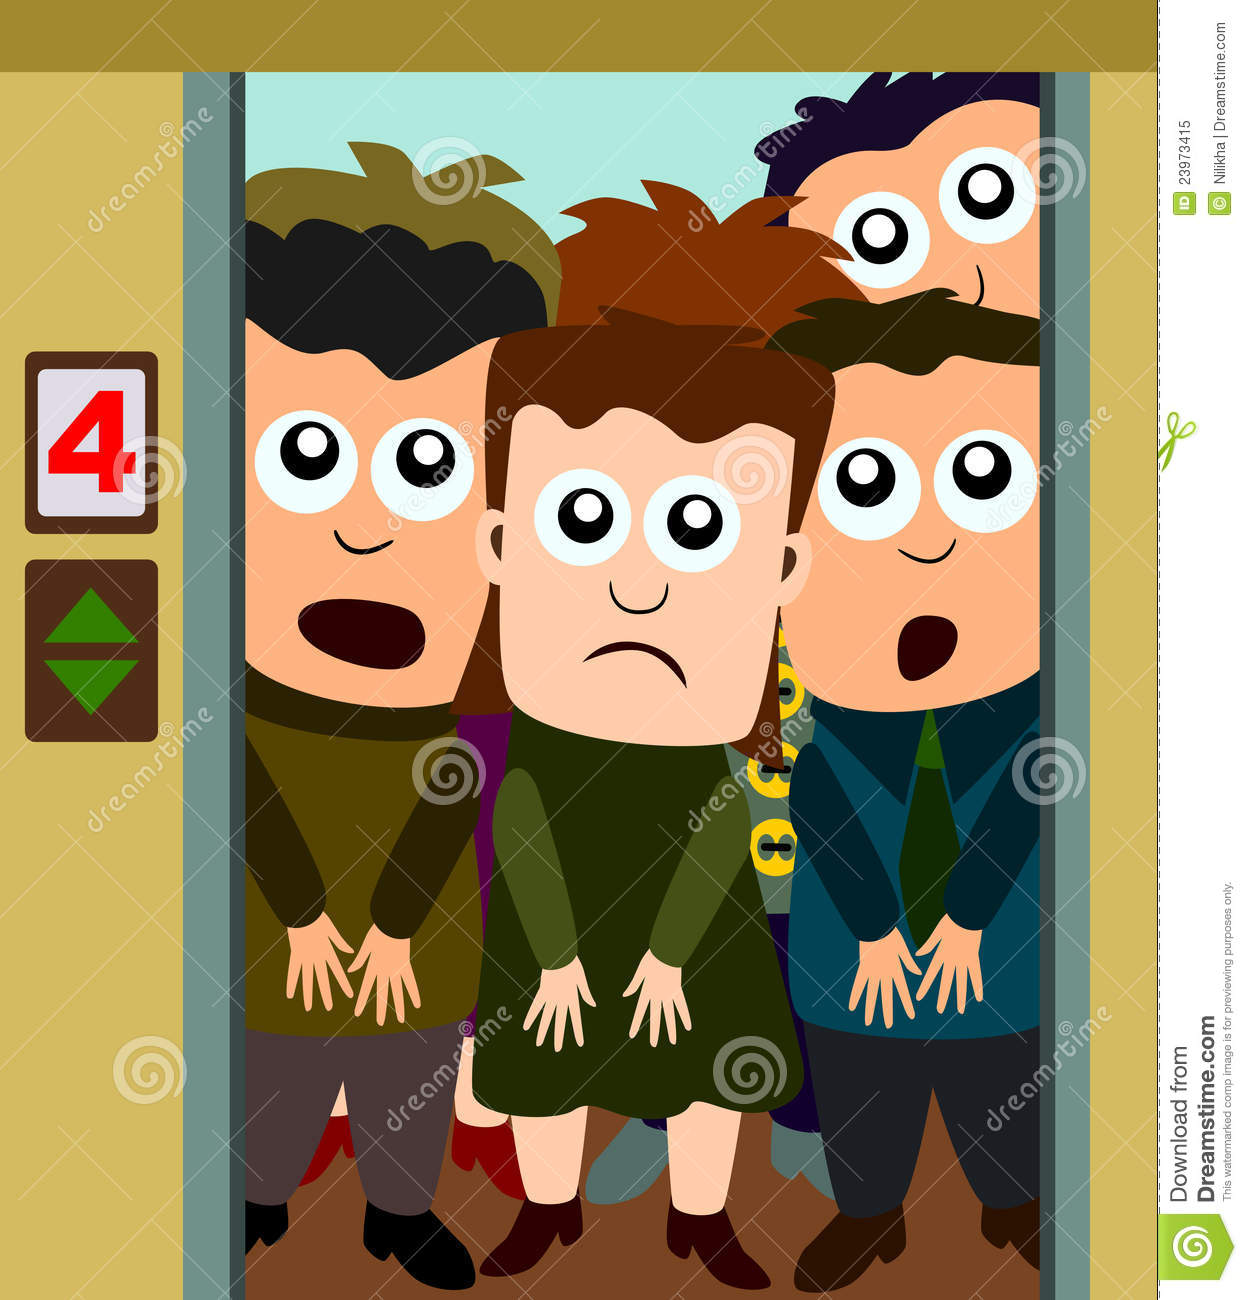 Crowded Elevator Clipart.